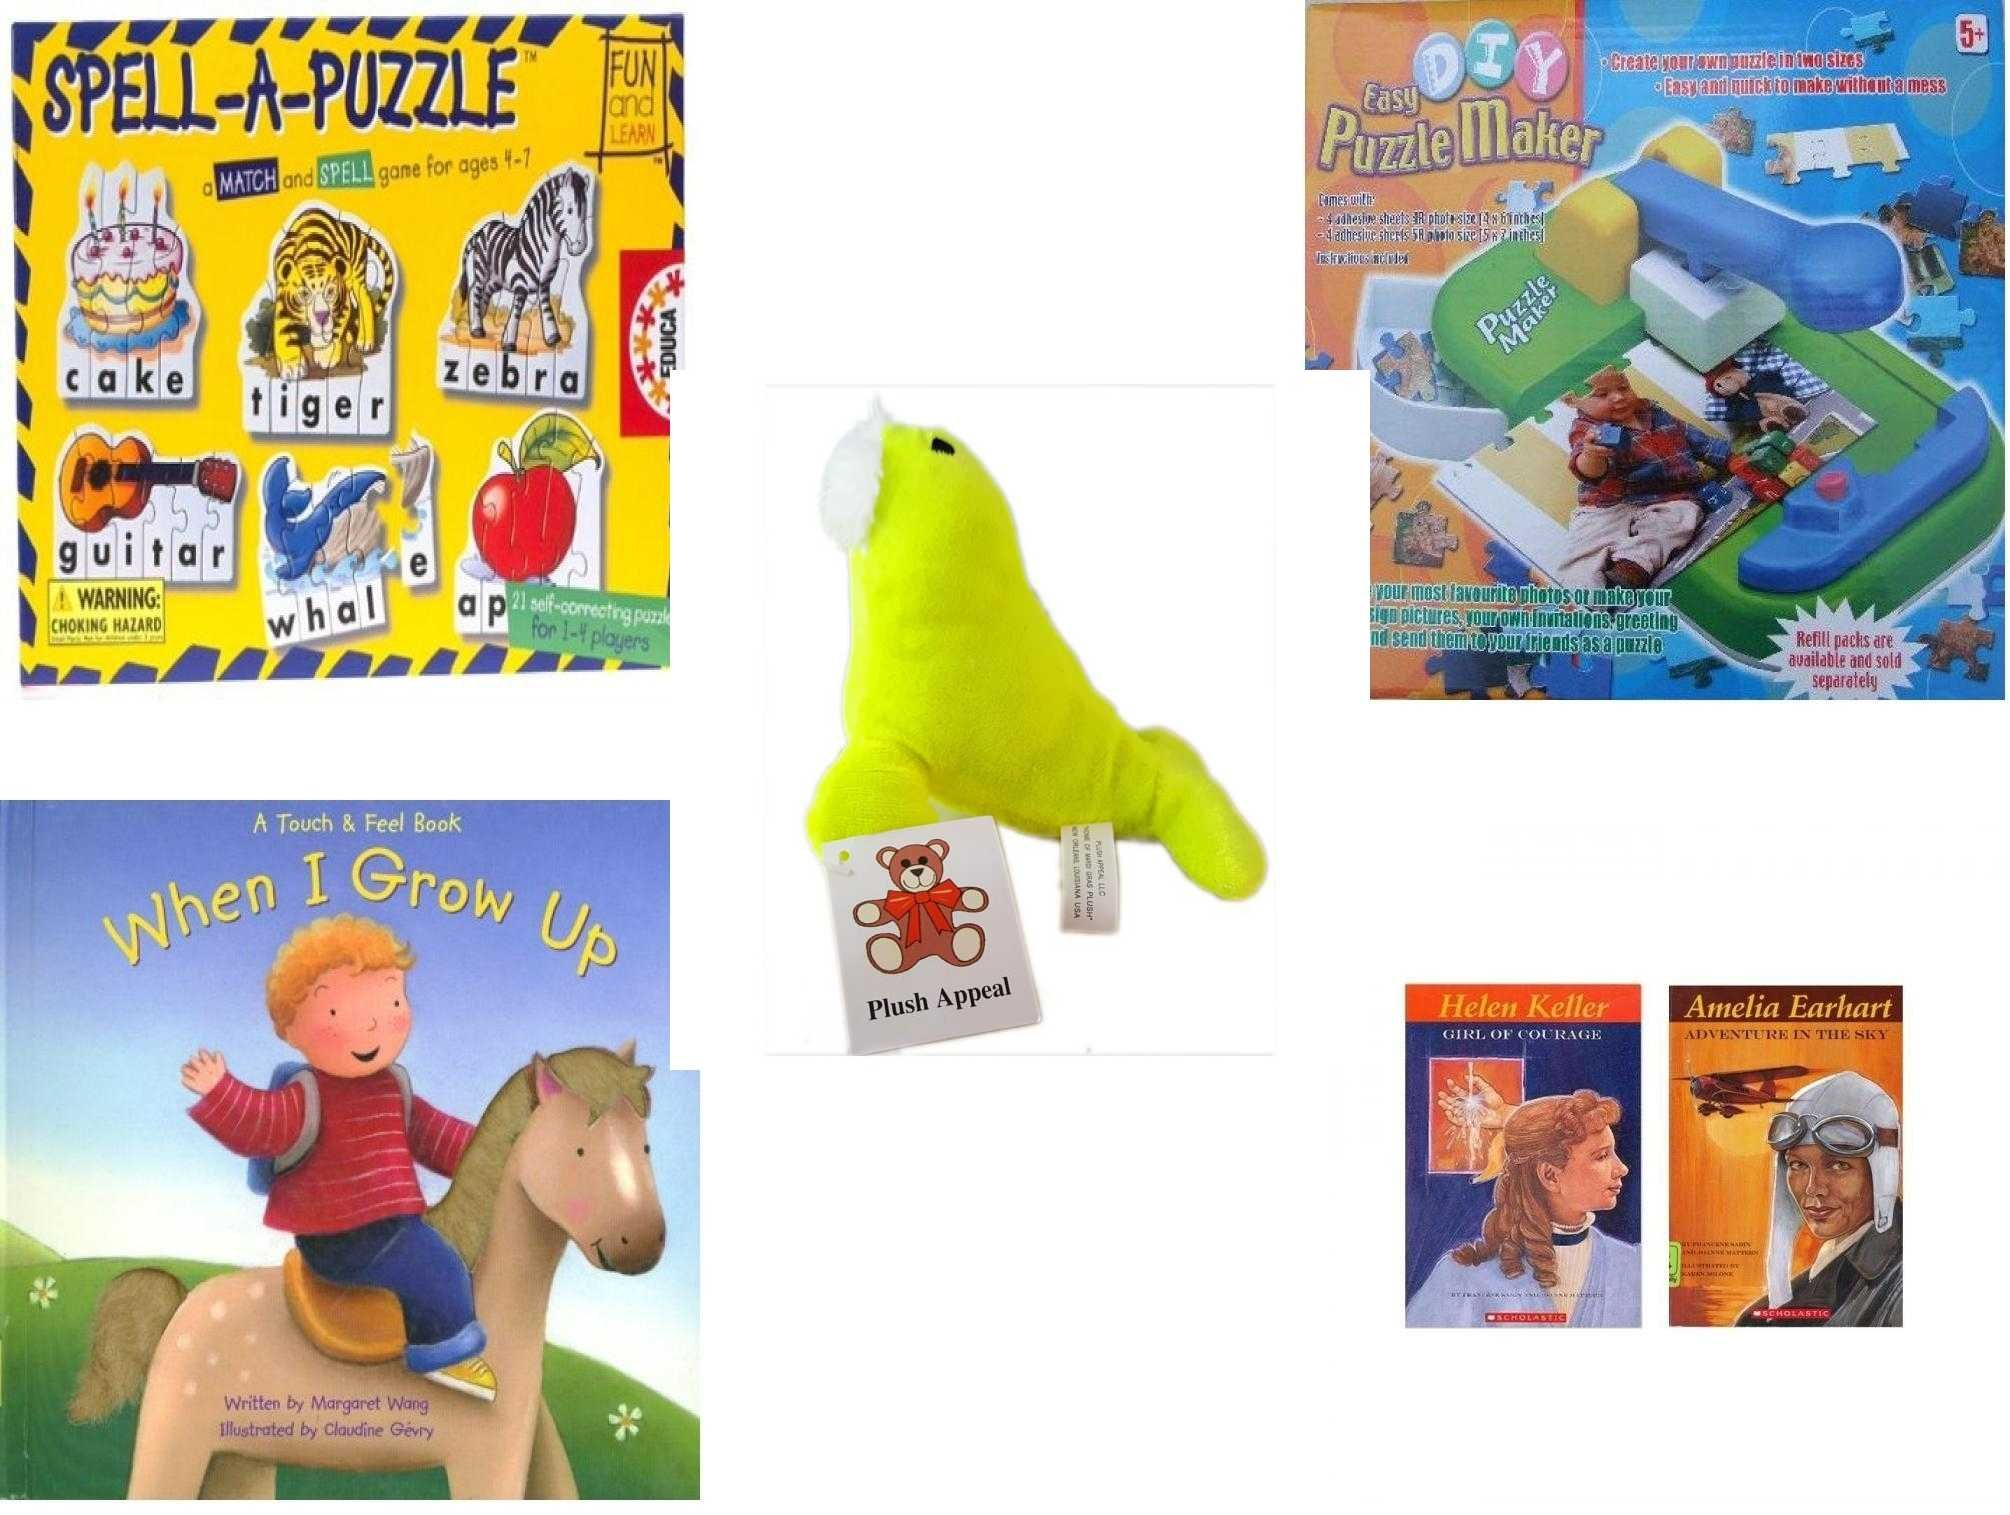 Children's Gift Bundle - Ages 3-5 [5 Piece] - Spell A Puzzle Game - DIY Easy Puzzle Maker Toy - Plush Appeal Neon Sea Lion Plush 4.5'' - When I Grow UpHardcover Book - Women's History Pack: Helen K